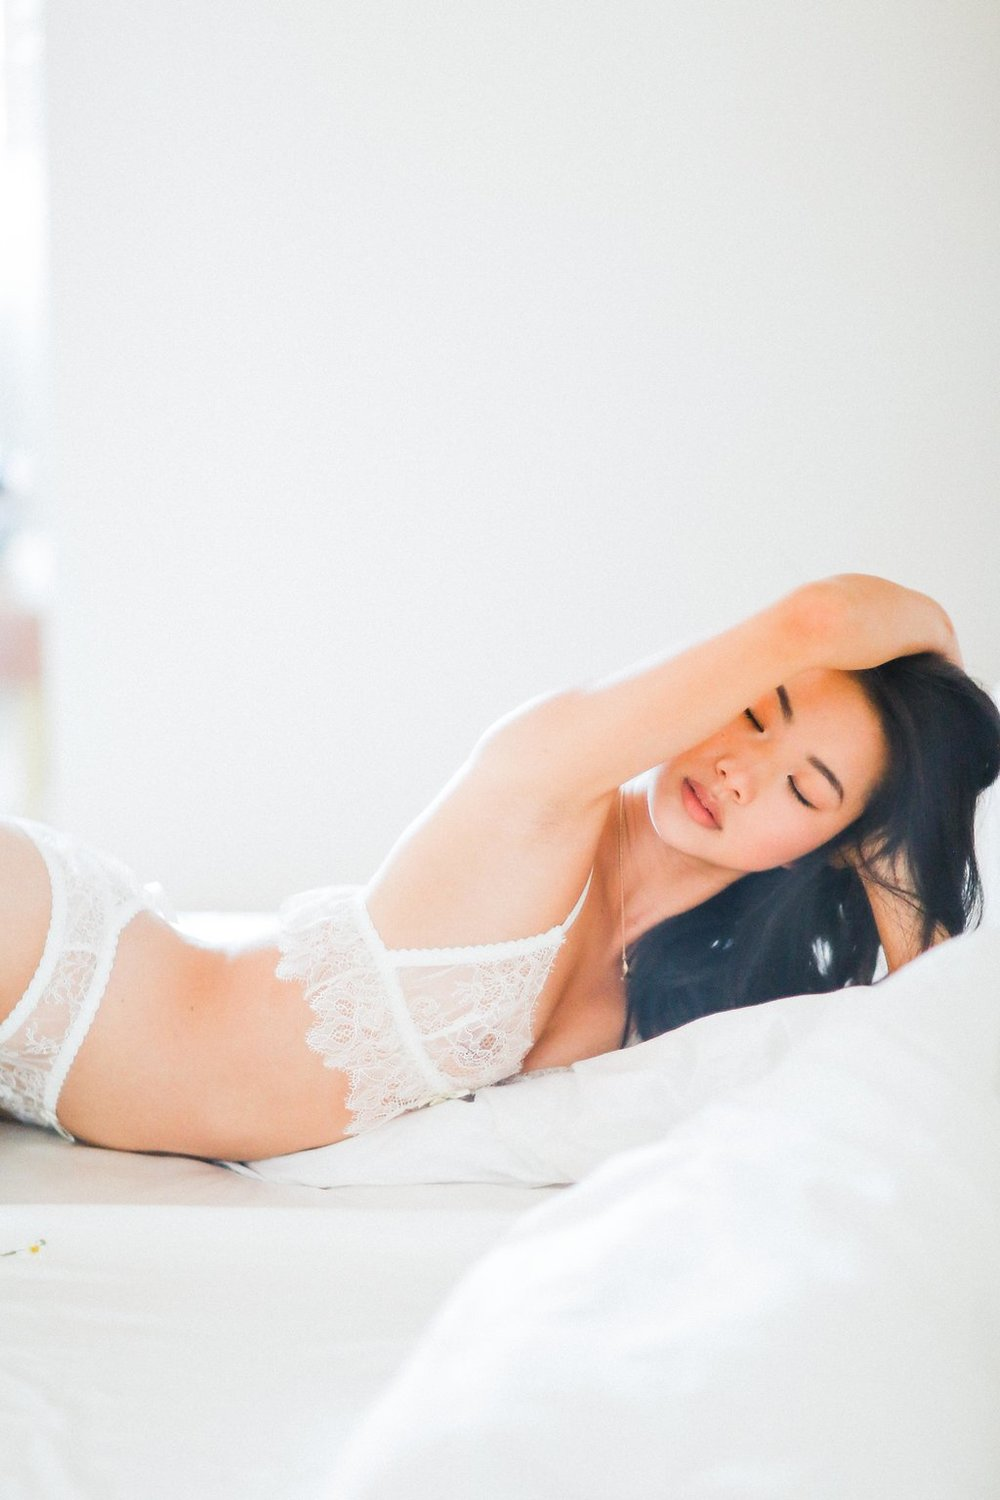 Bridal Boudoir | Lana Ivanova Photo, Sydney